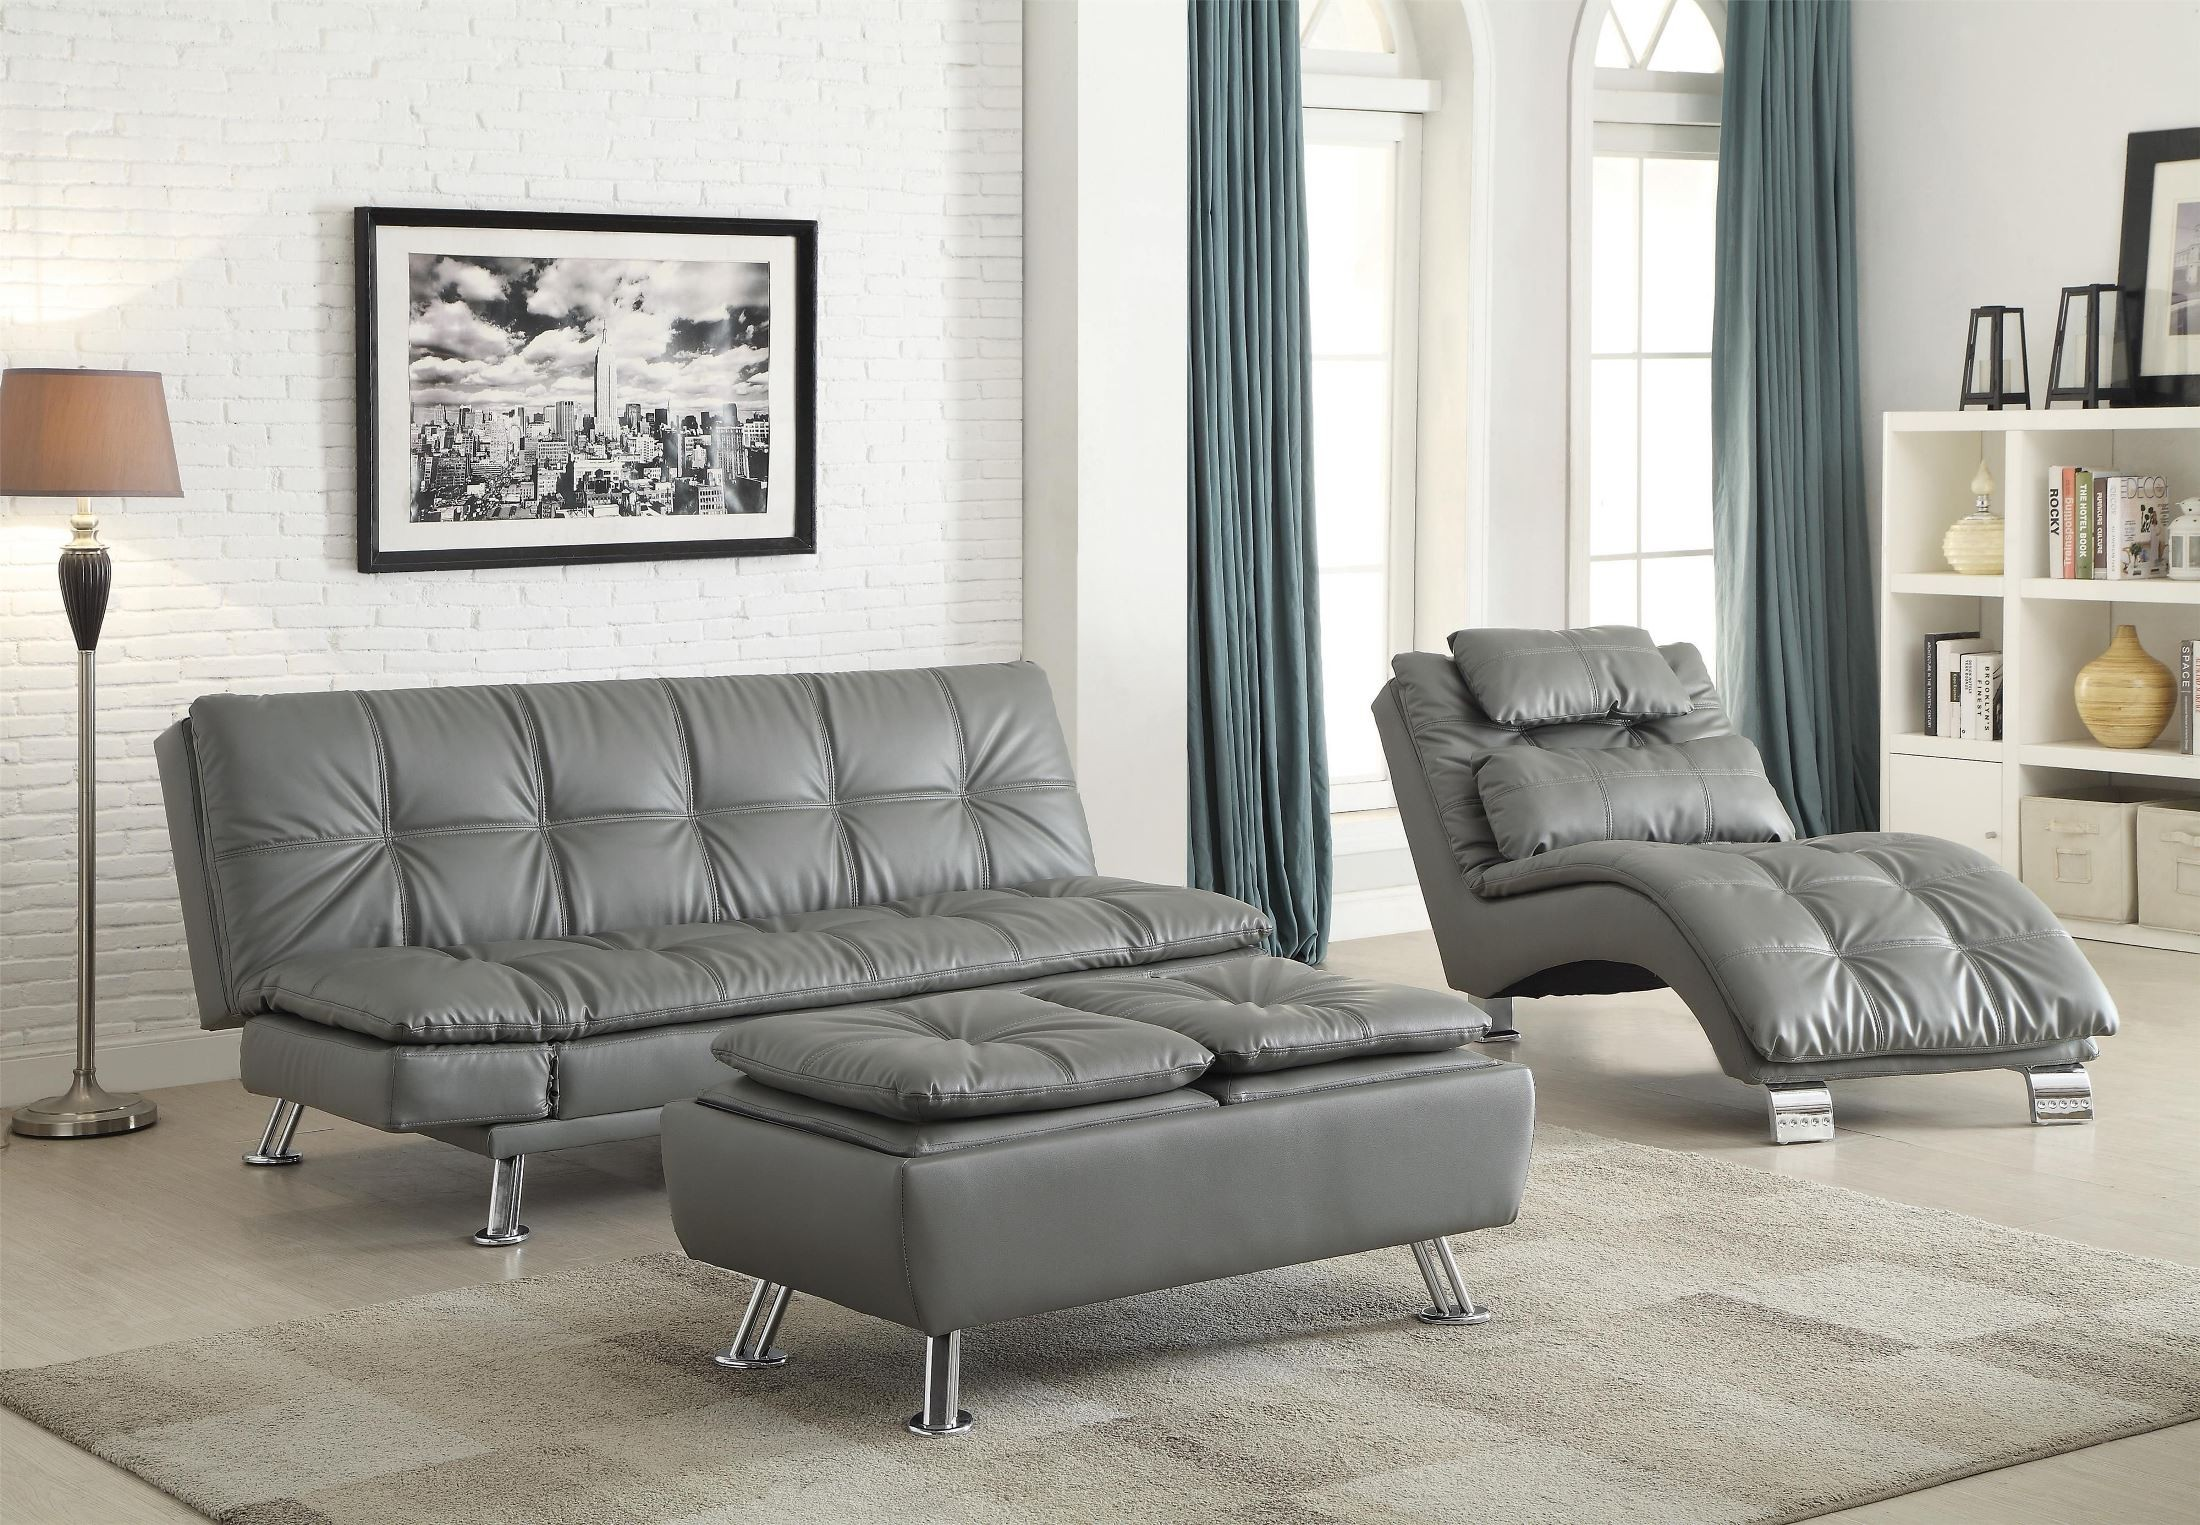 Dilleston Futon Style Living Room Set from Coaster (500096 ...